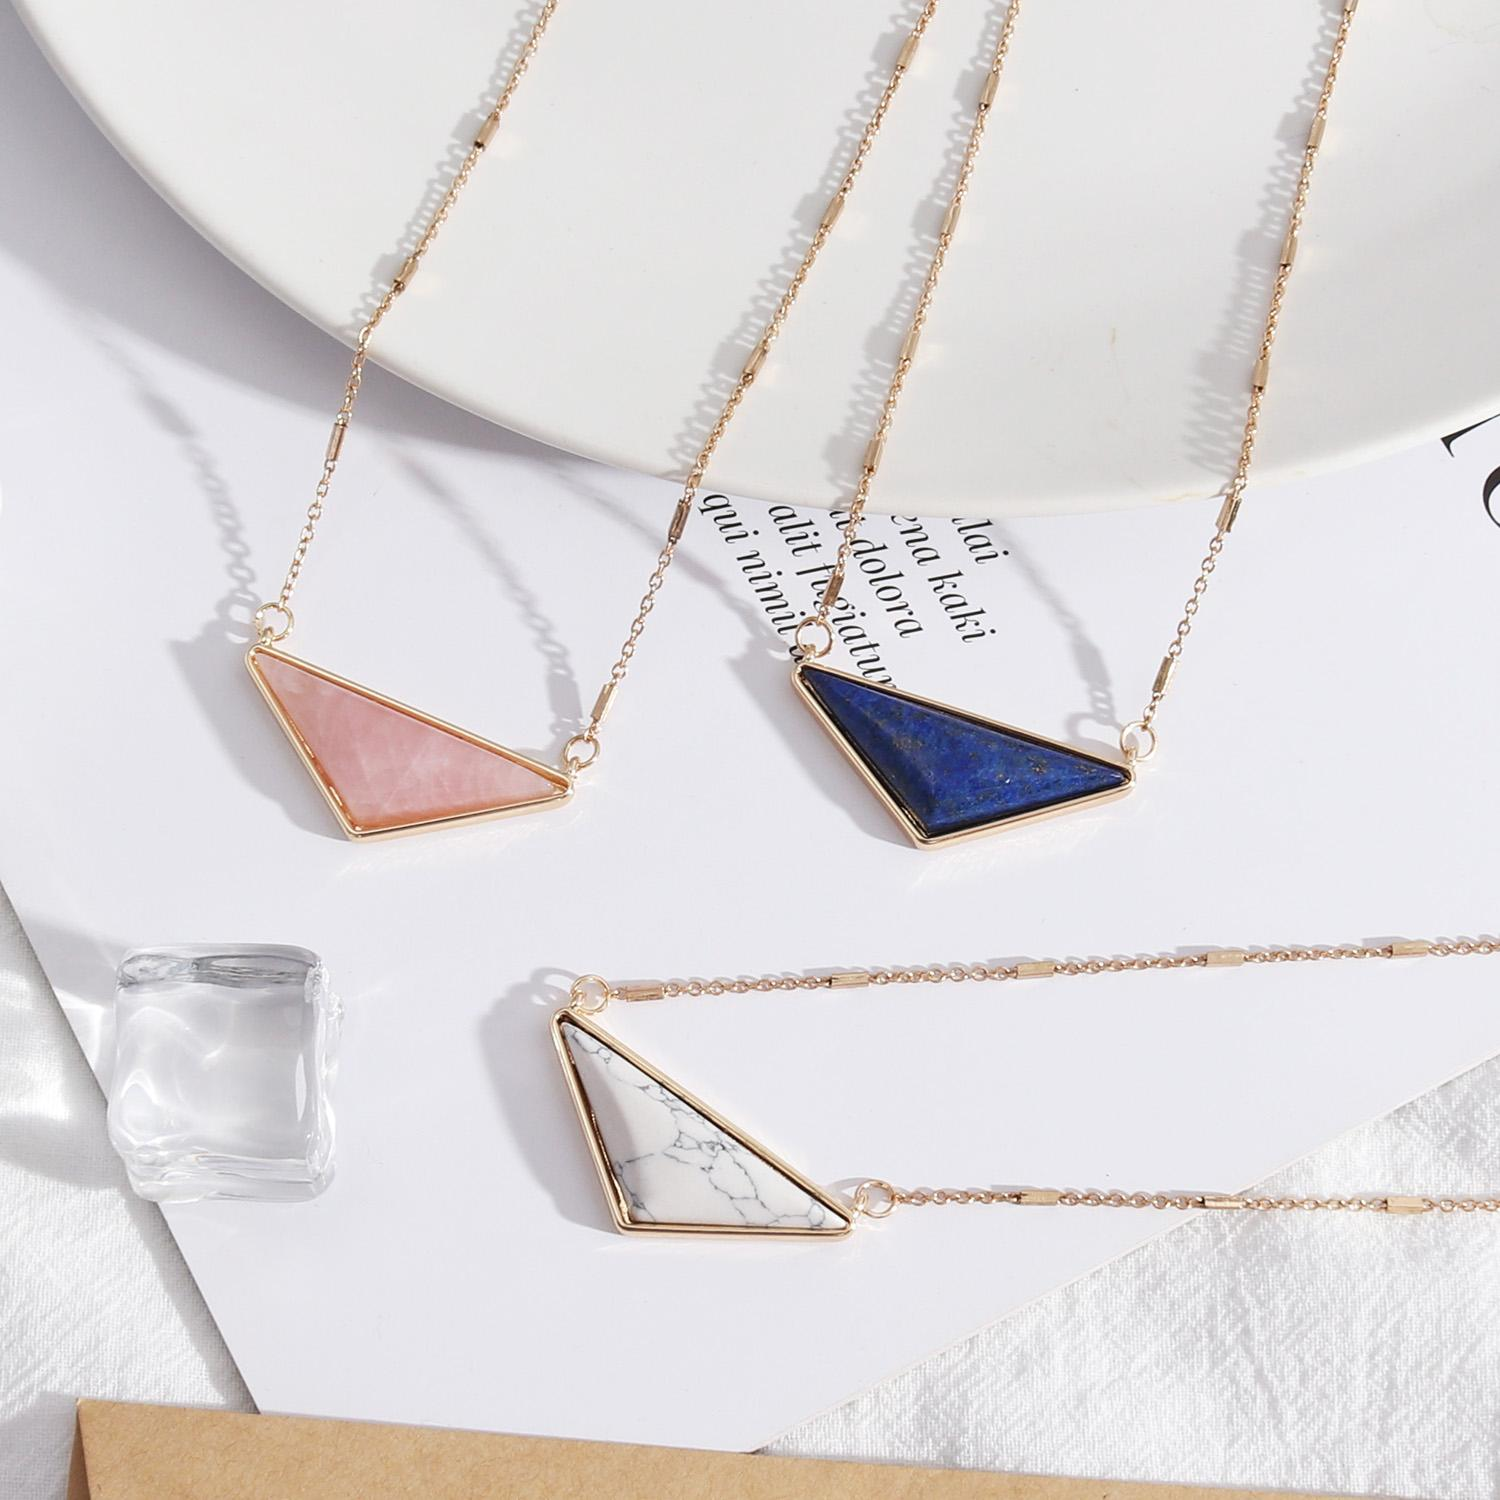 Free Shipping Triangle Alloy Natural Stones Short Necklace, Pink Blue White Simple-New Party Holidays Pendant Necklace For Women Girls